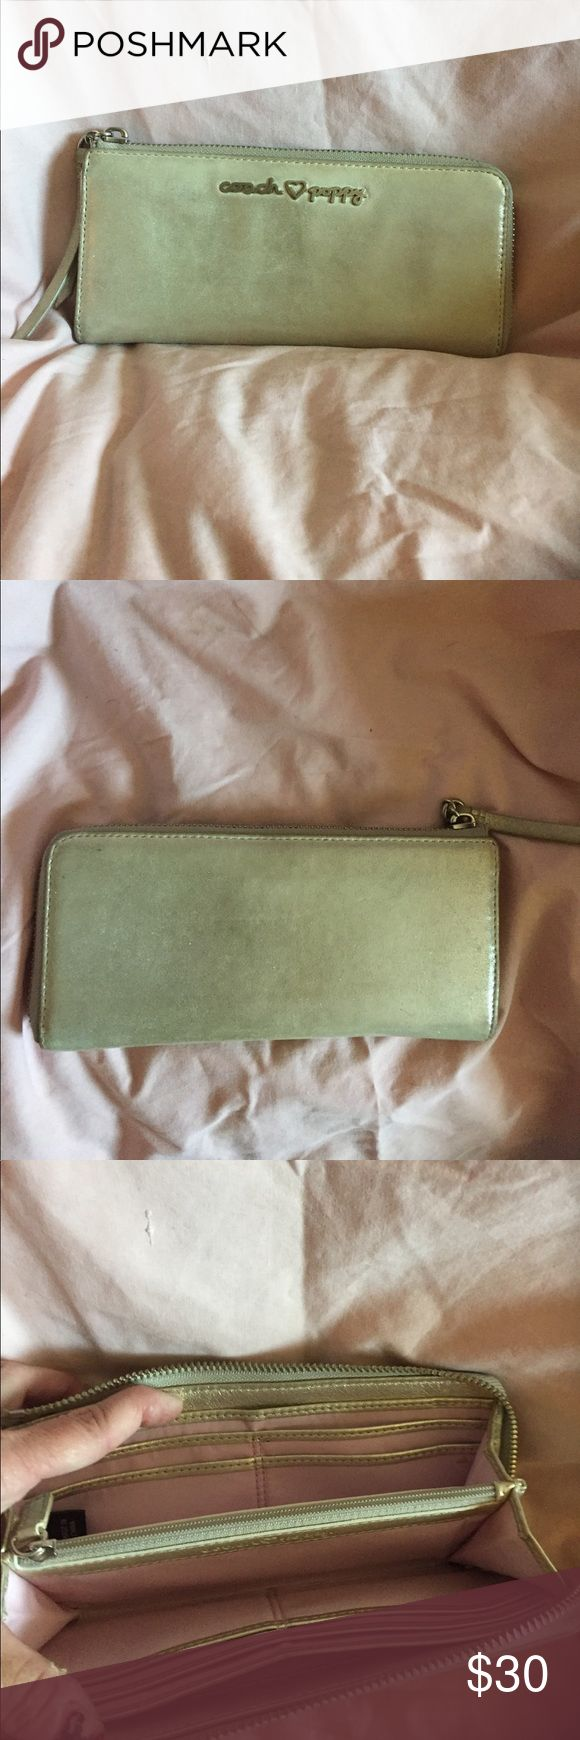 """COACH POPPY WALLET Cream iridescent sparkle wallet approximate measurements are H 4""""  L 7.5. In good pre owned condition Coach Bags Wallets"""